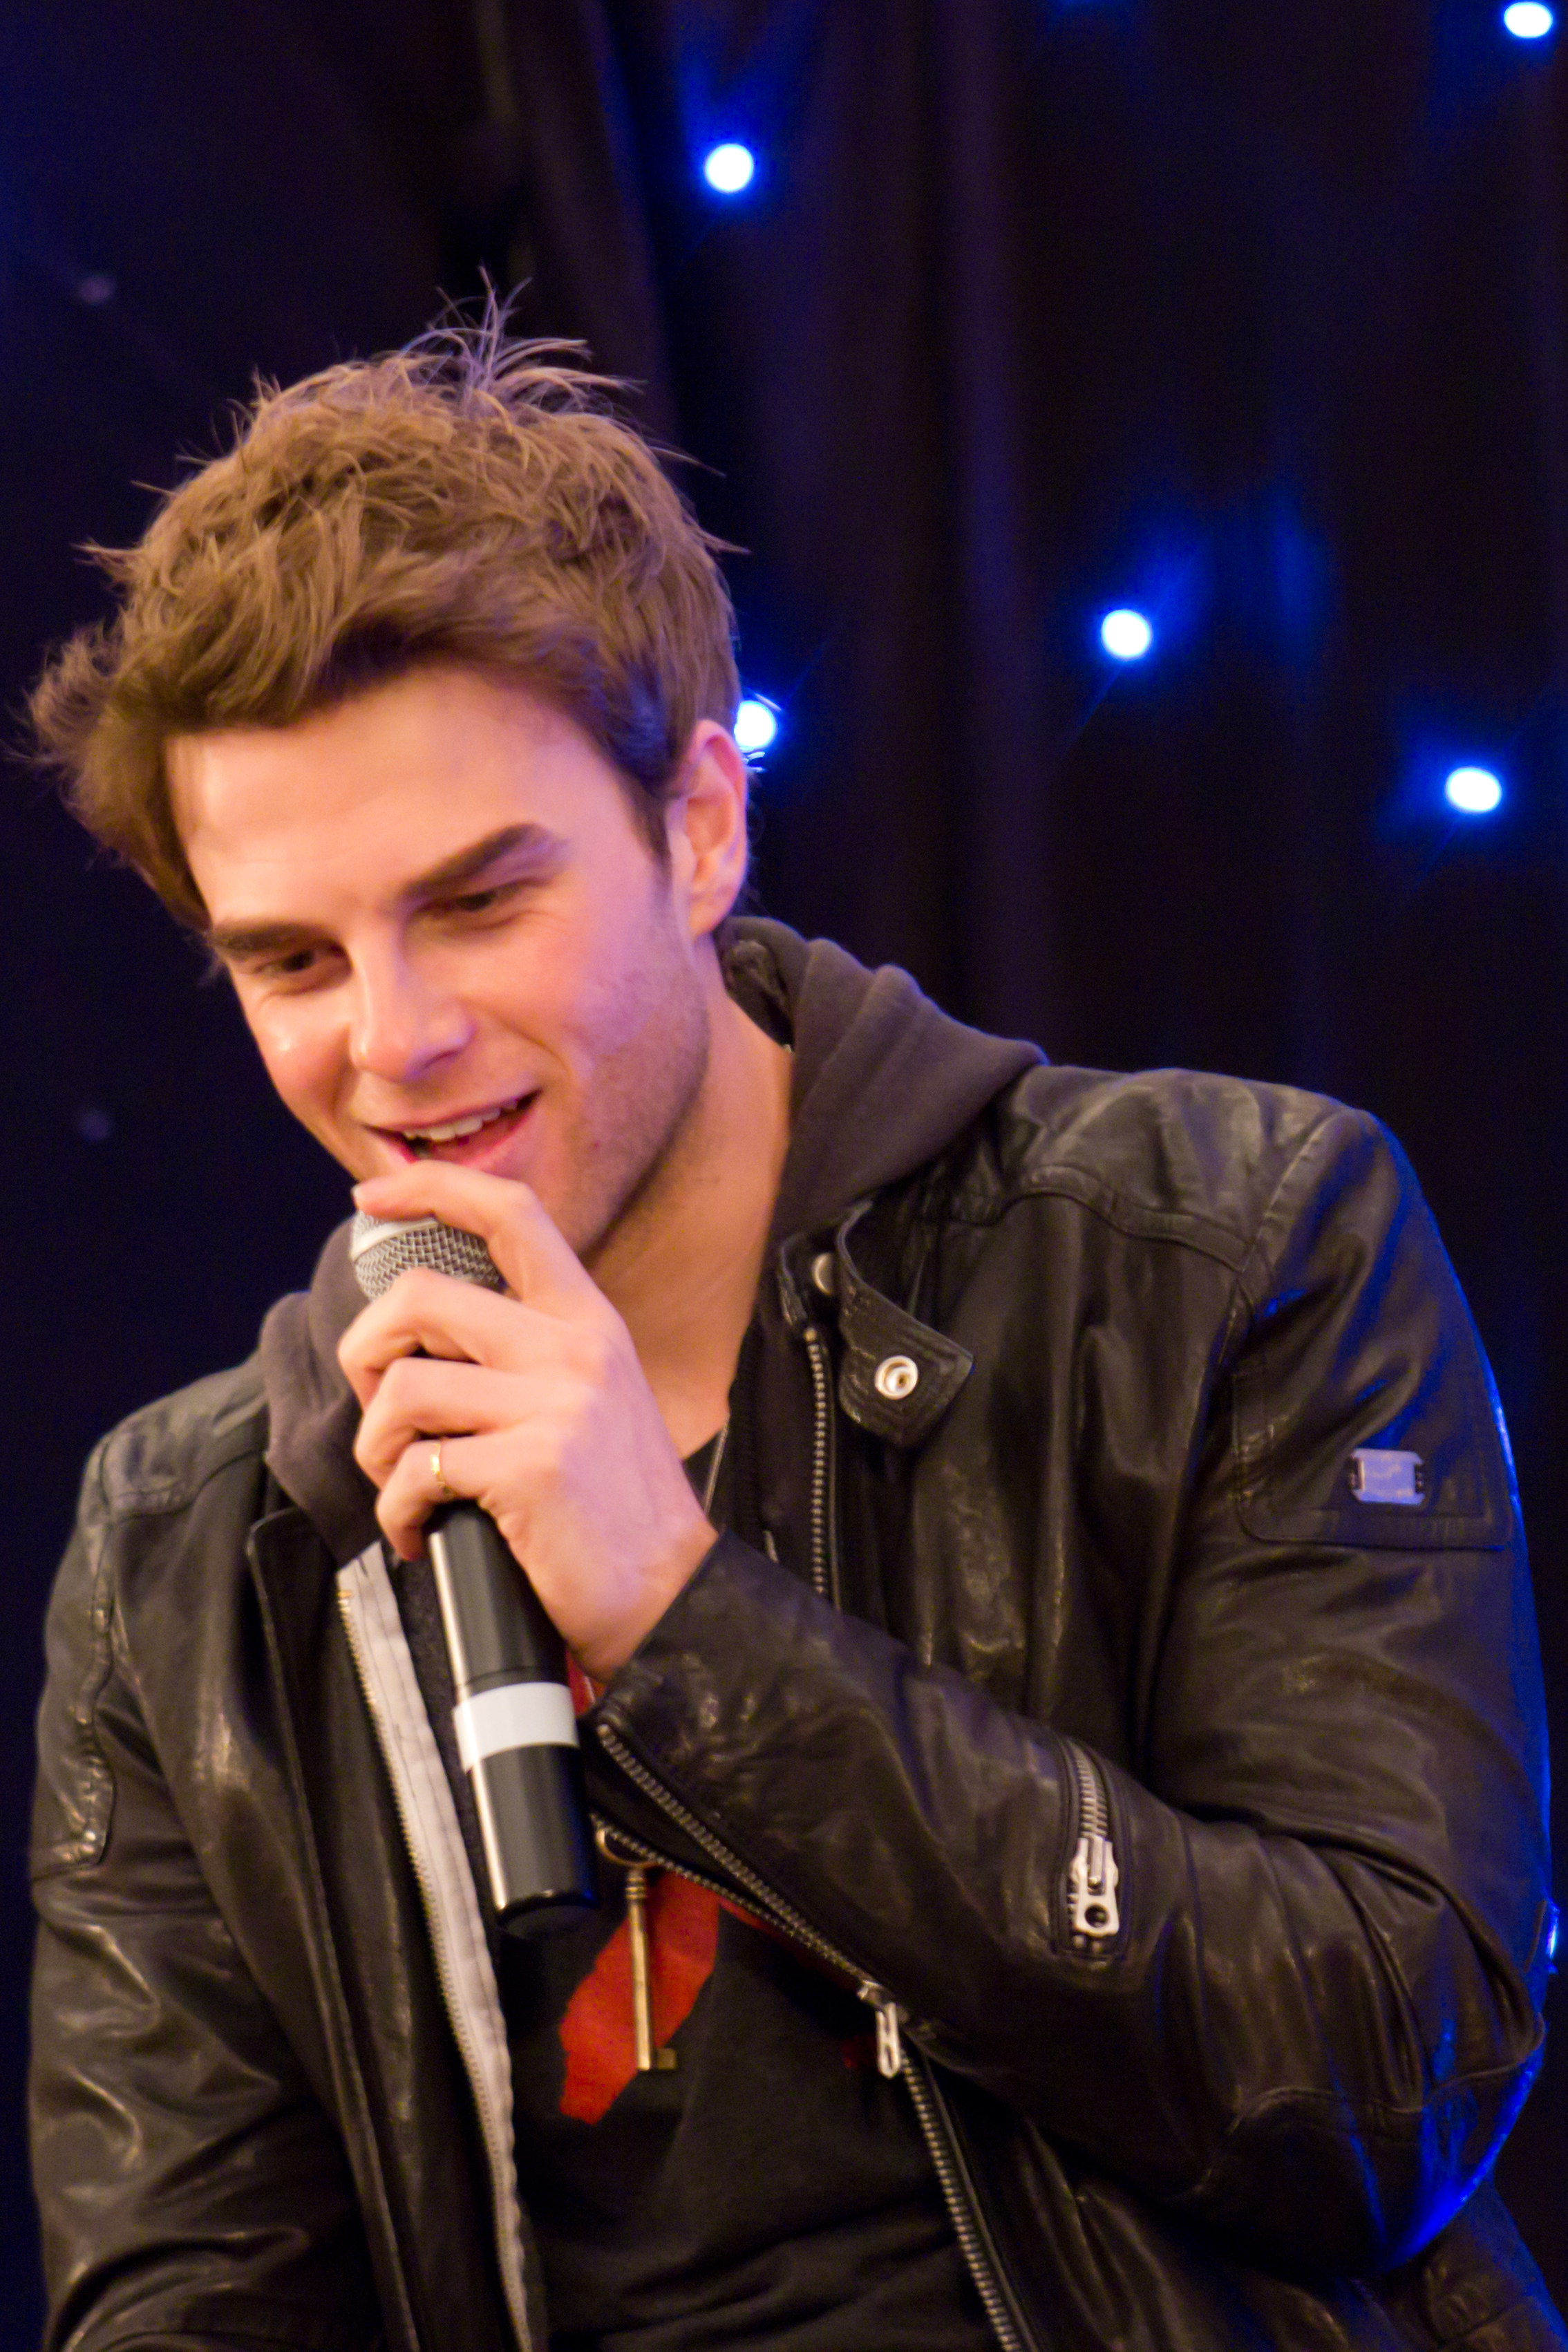 nathaniel buzolic личная жизньnathaniel buzolic vk, nathaniel buzolic gif, nathaniel buzolic личная жизнь, nathaniel buzolic gif hunt, nathaniel buzolic gallery, nathaniel buzolic png, nathaniel buzolic and nina dobrev, nathaniel buzolic photoshoot, nathaniel buzolic height, nathaniel buzolic the originals, nathaniel buzolic height and weight, nathaniel buzolic age, nathaniel buzolic instagram photos, nathaniel buzolic ruby rose, nathaniel buzolic site, nathaniel buzolic web, nathaniel buzolic imdb, nathaniel buzolic lorna lalinec, nathaniel buzolic news, nathaniel buzolic and hayley stewart